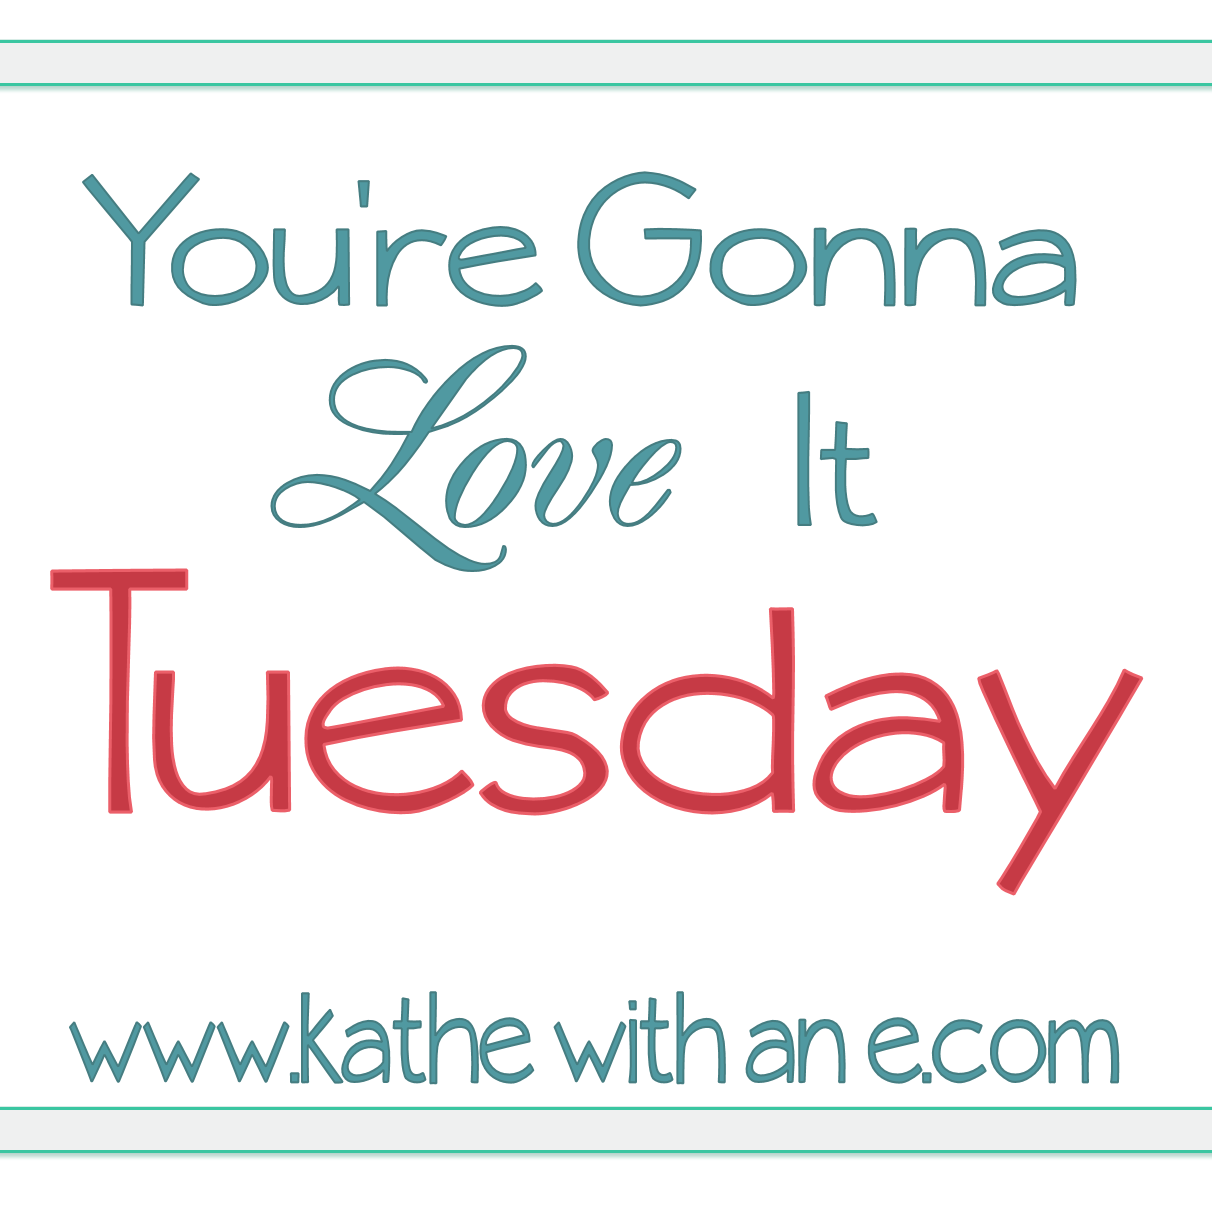 You're Gonna Love It Tuesday